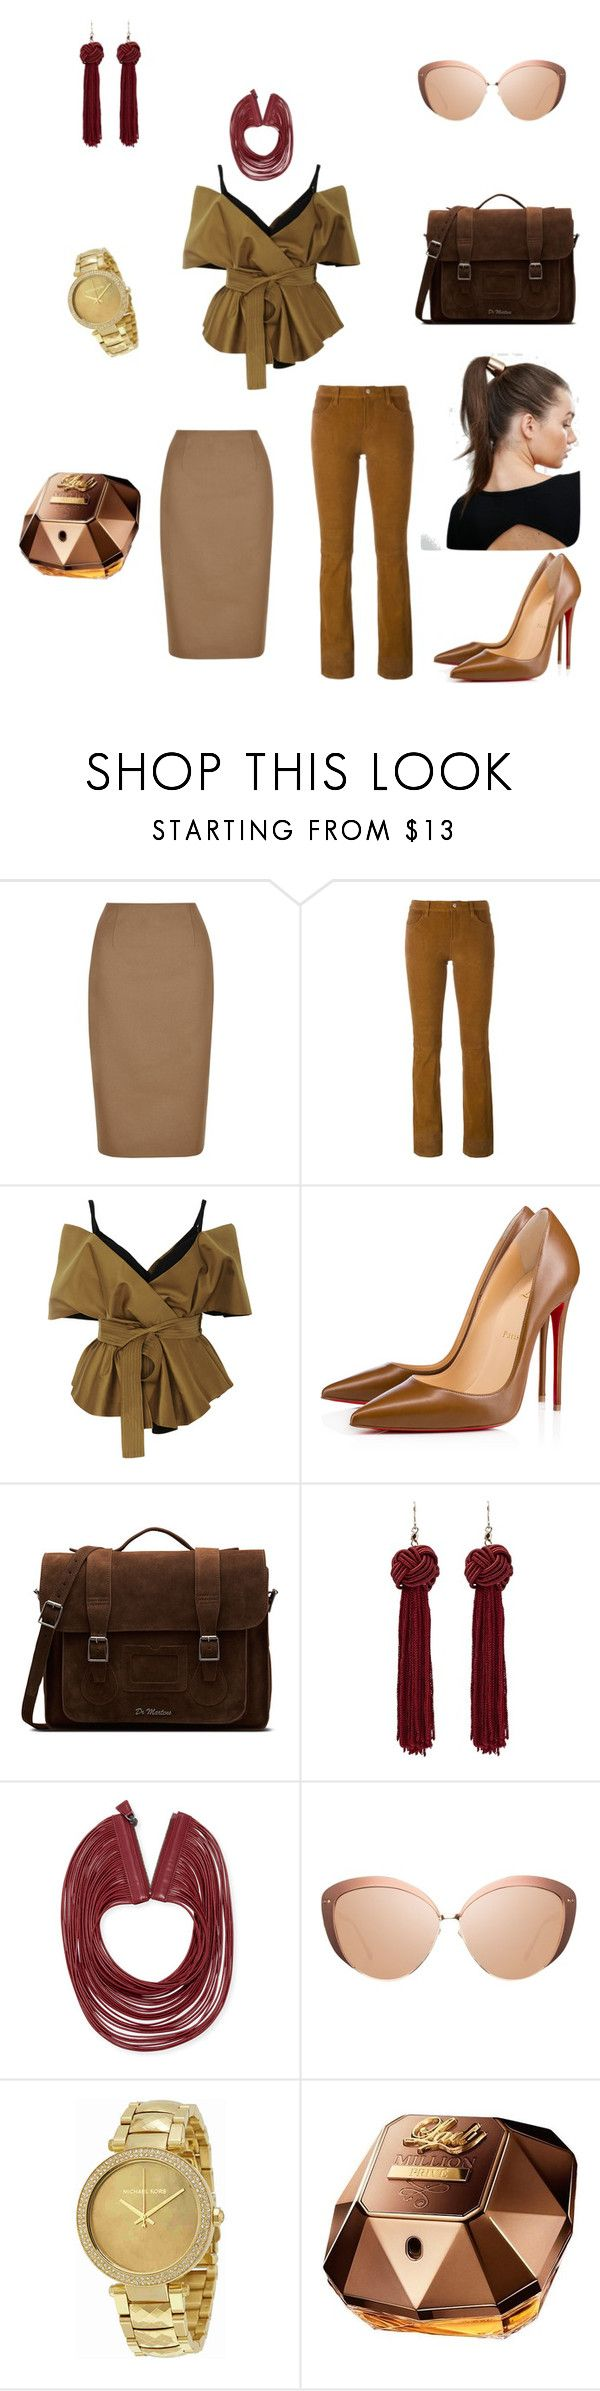 """Untitled #7"" by anastasiahag ❤ liked on Polyvore featuring Hobbs, J Brand, Acler, Christian Louboutin, Dr. Martens, Akris, Linda Farrow, Michael Kors, Paco Rabanne and Johnny Loves Rosie"